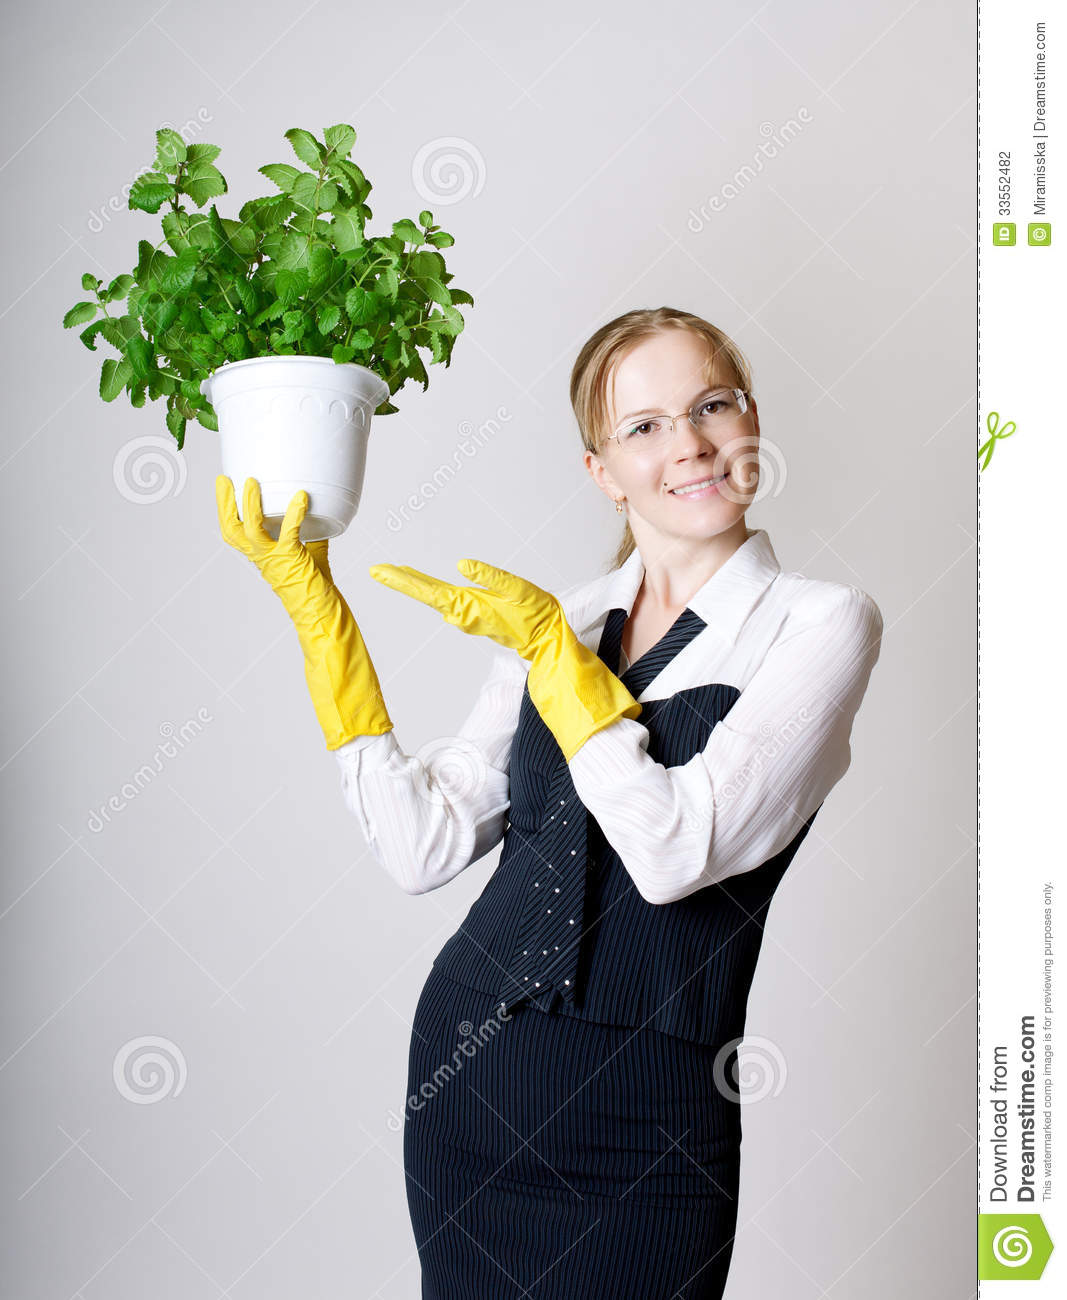 Successful business woman stock photography image 33552482 - Successful flower growing business ...